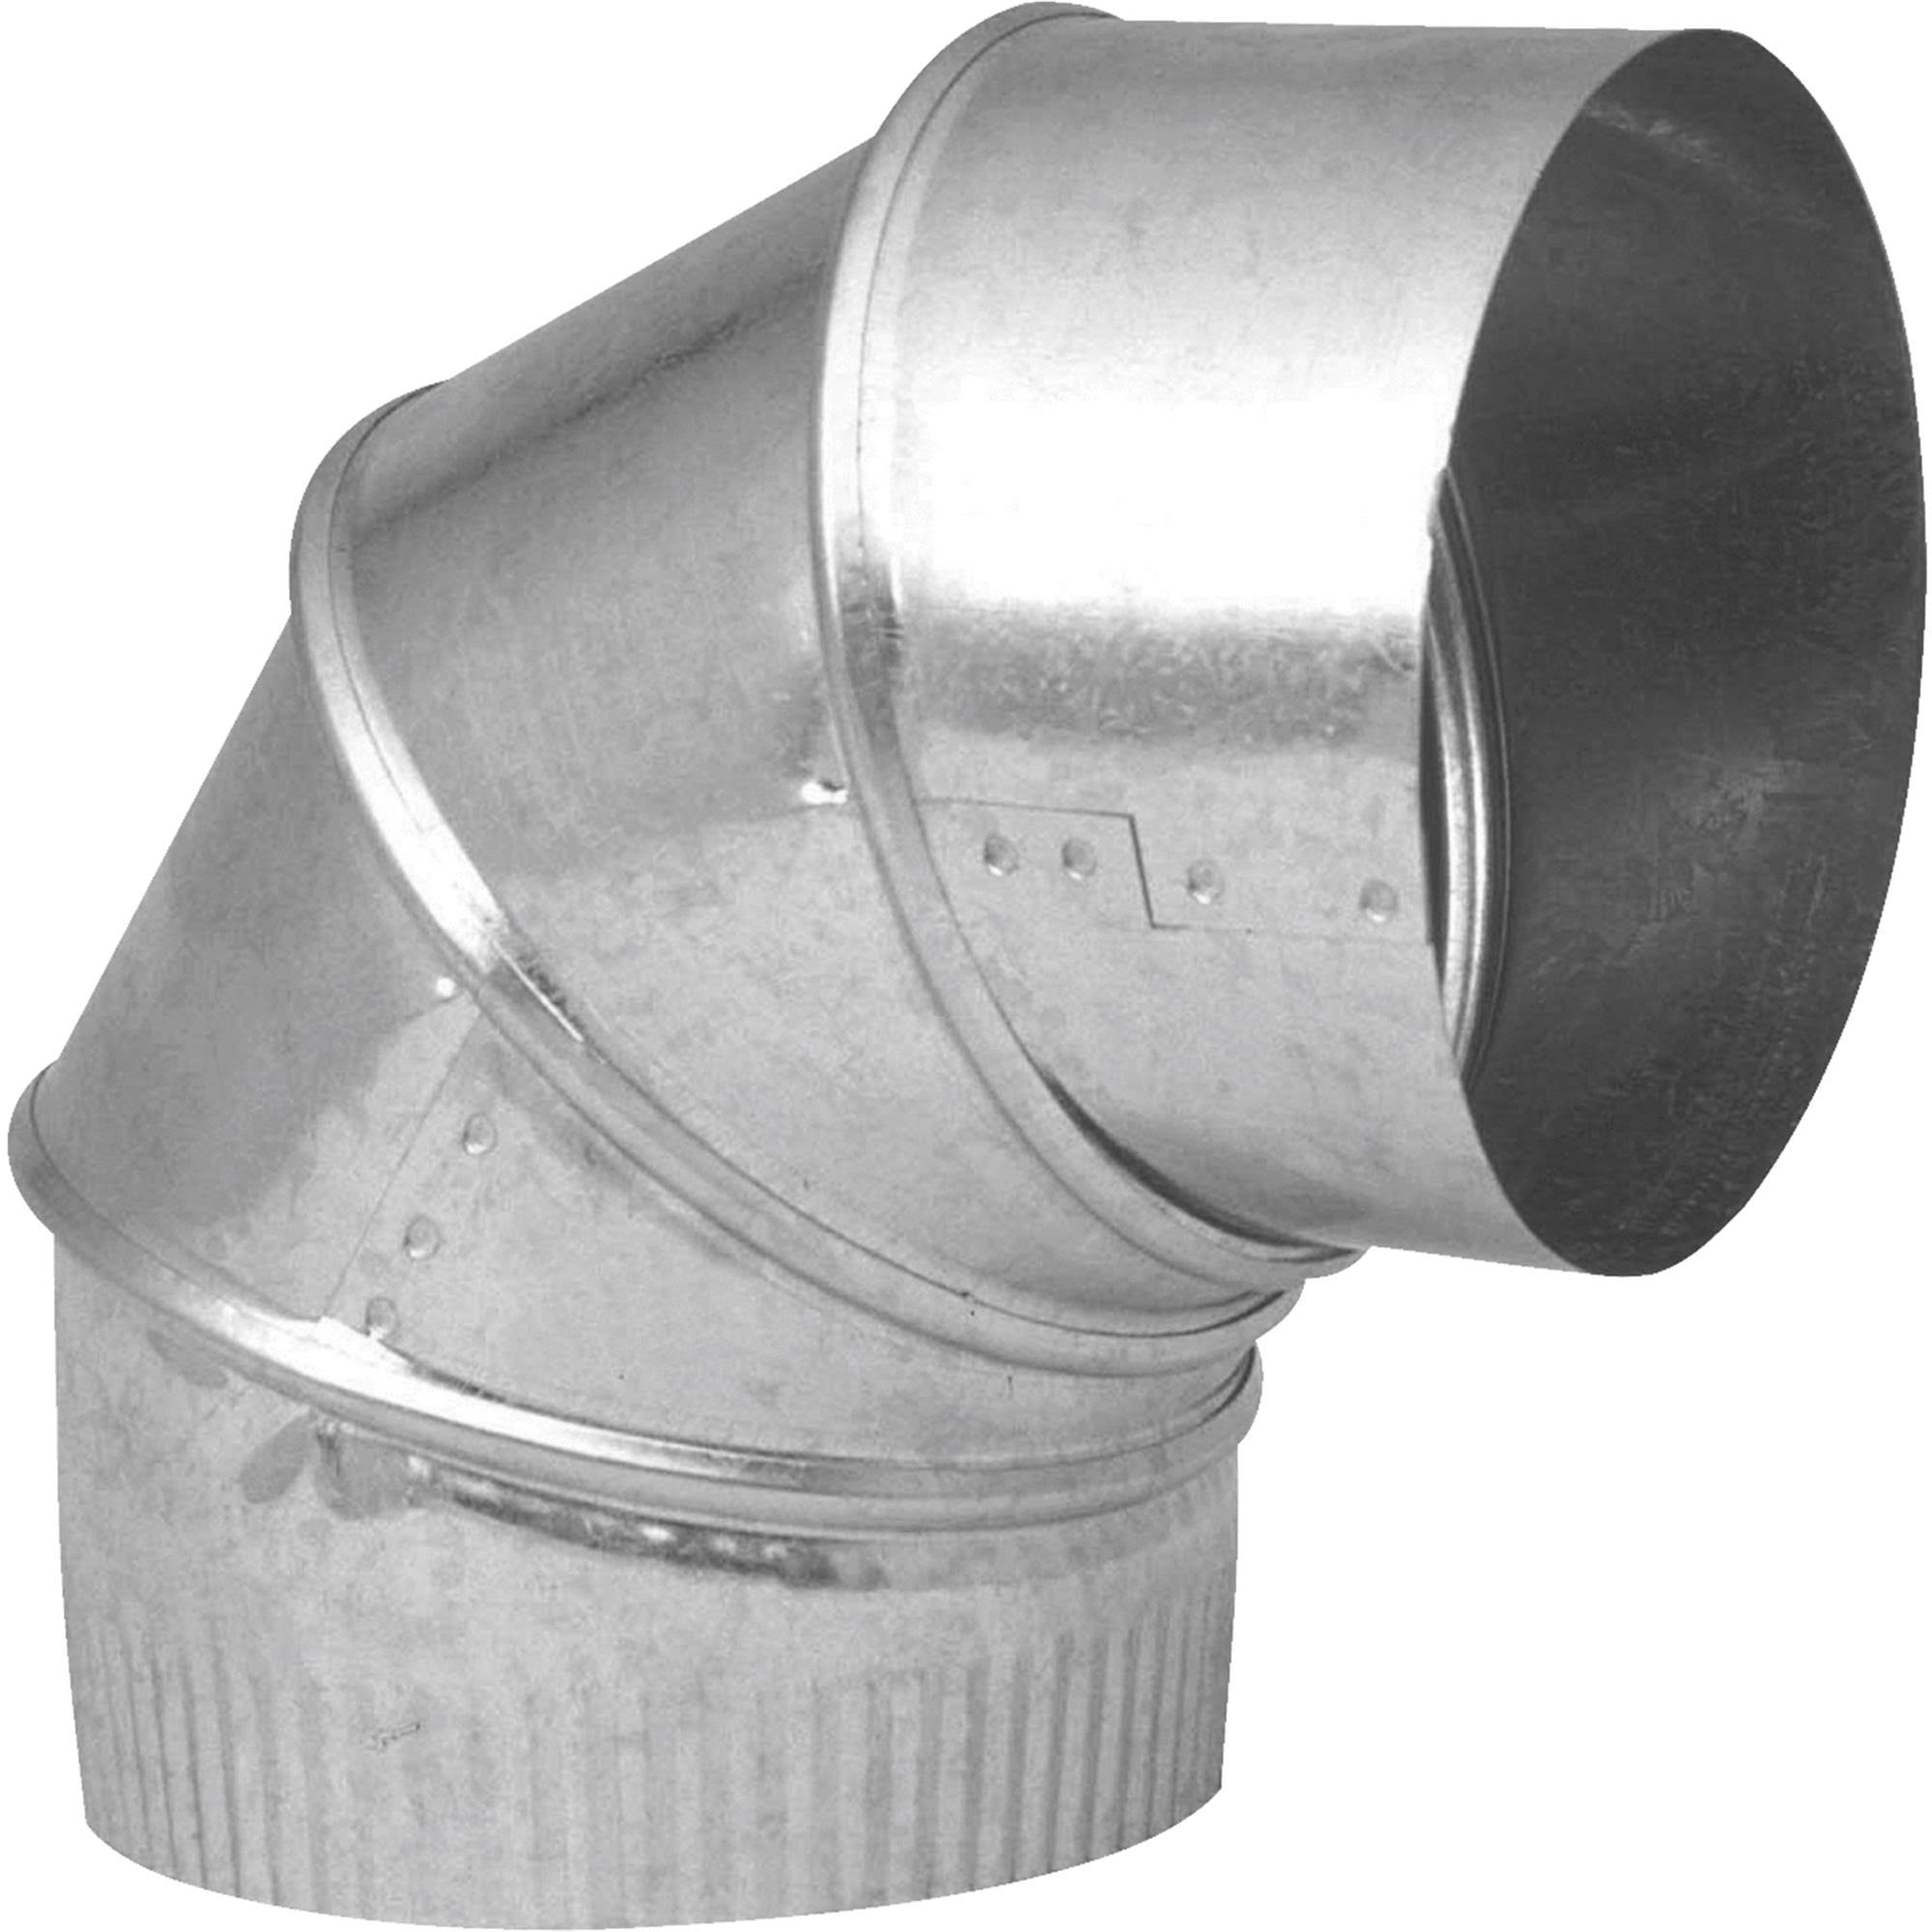 Imperial Manufacturing Group Galvanized Elbow - 28 Gauge, 3""